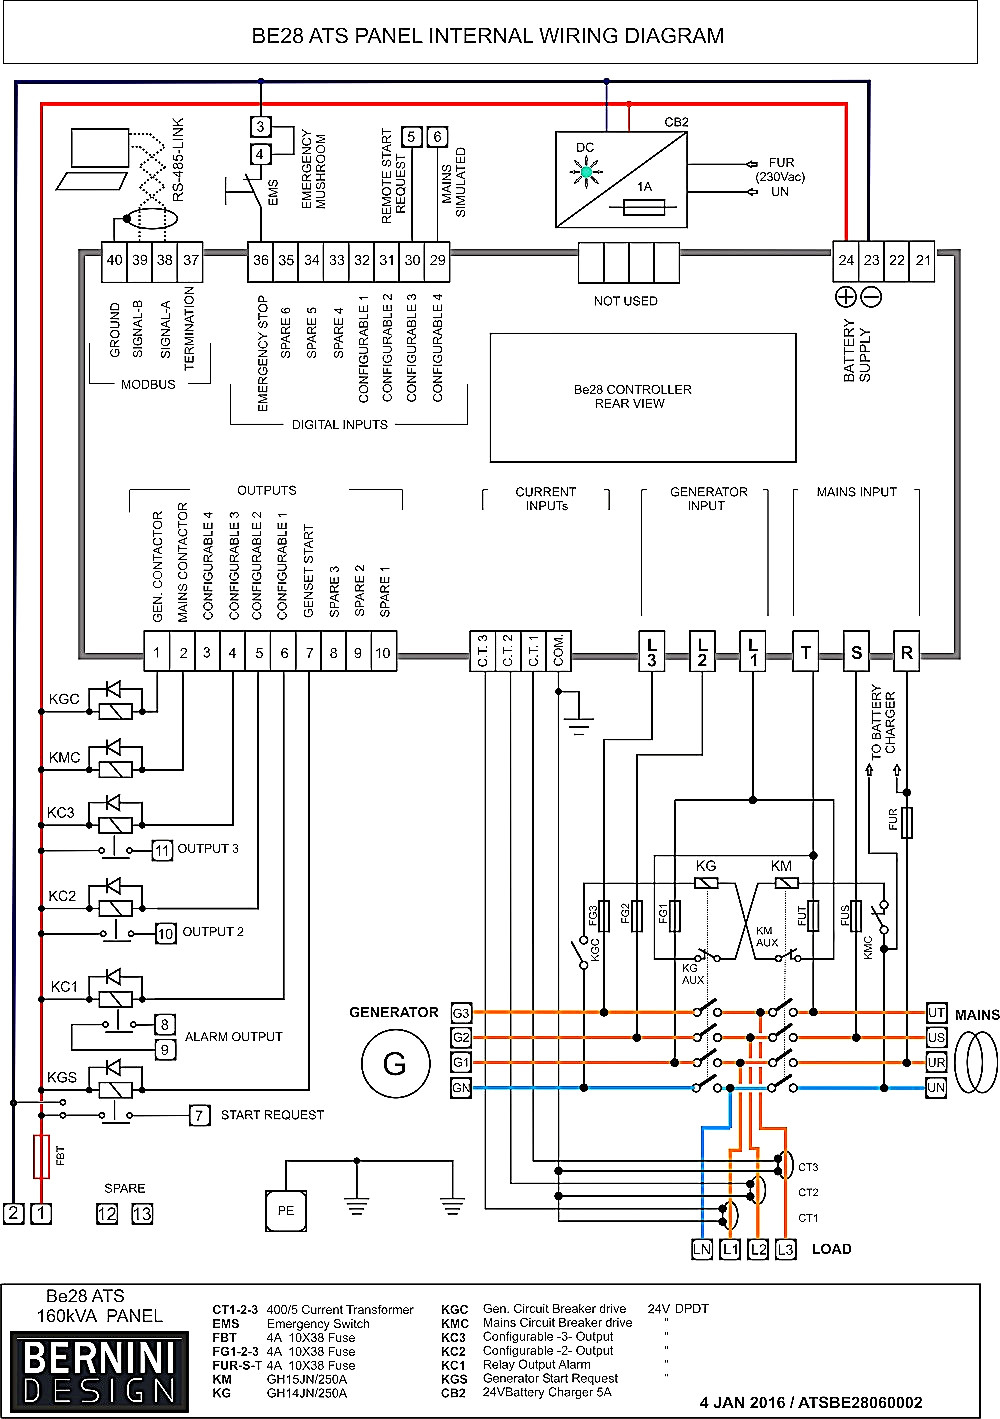 Generac Automatic Transfer Switch Wiring Diagram from wholefoodsonabudget.com